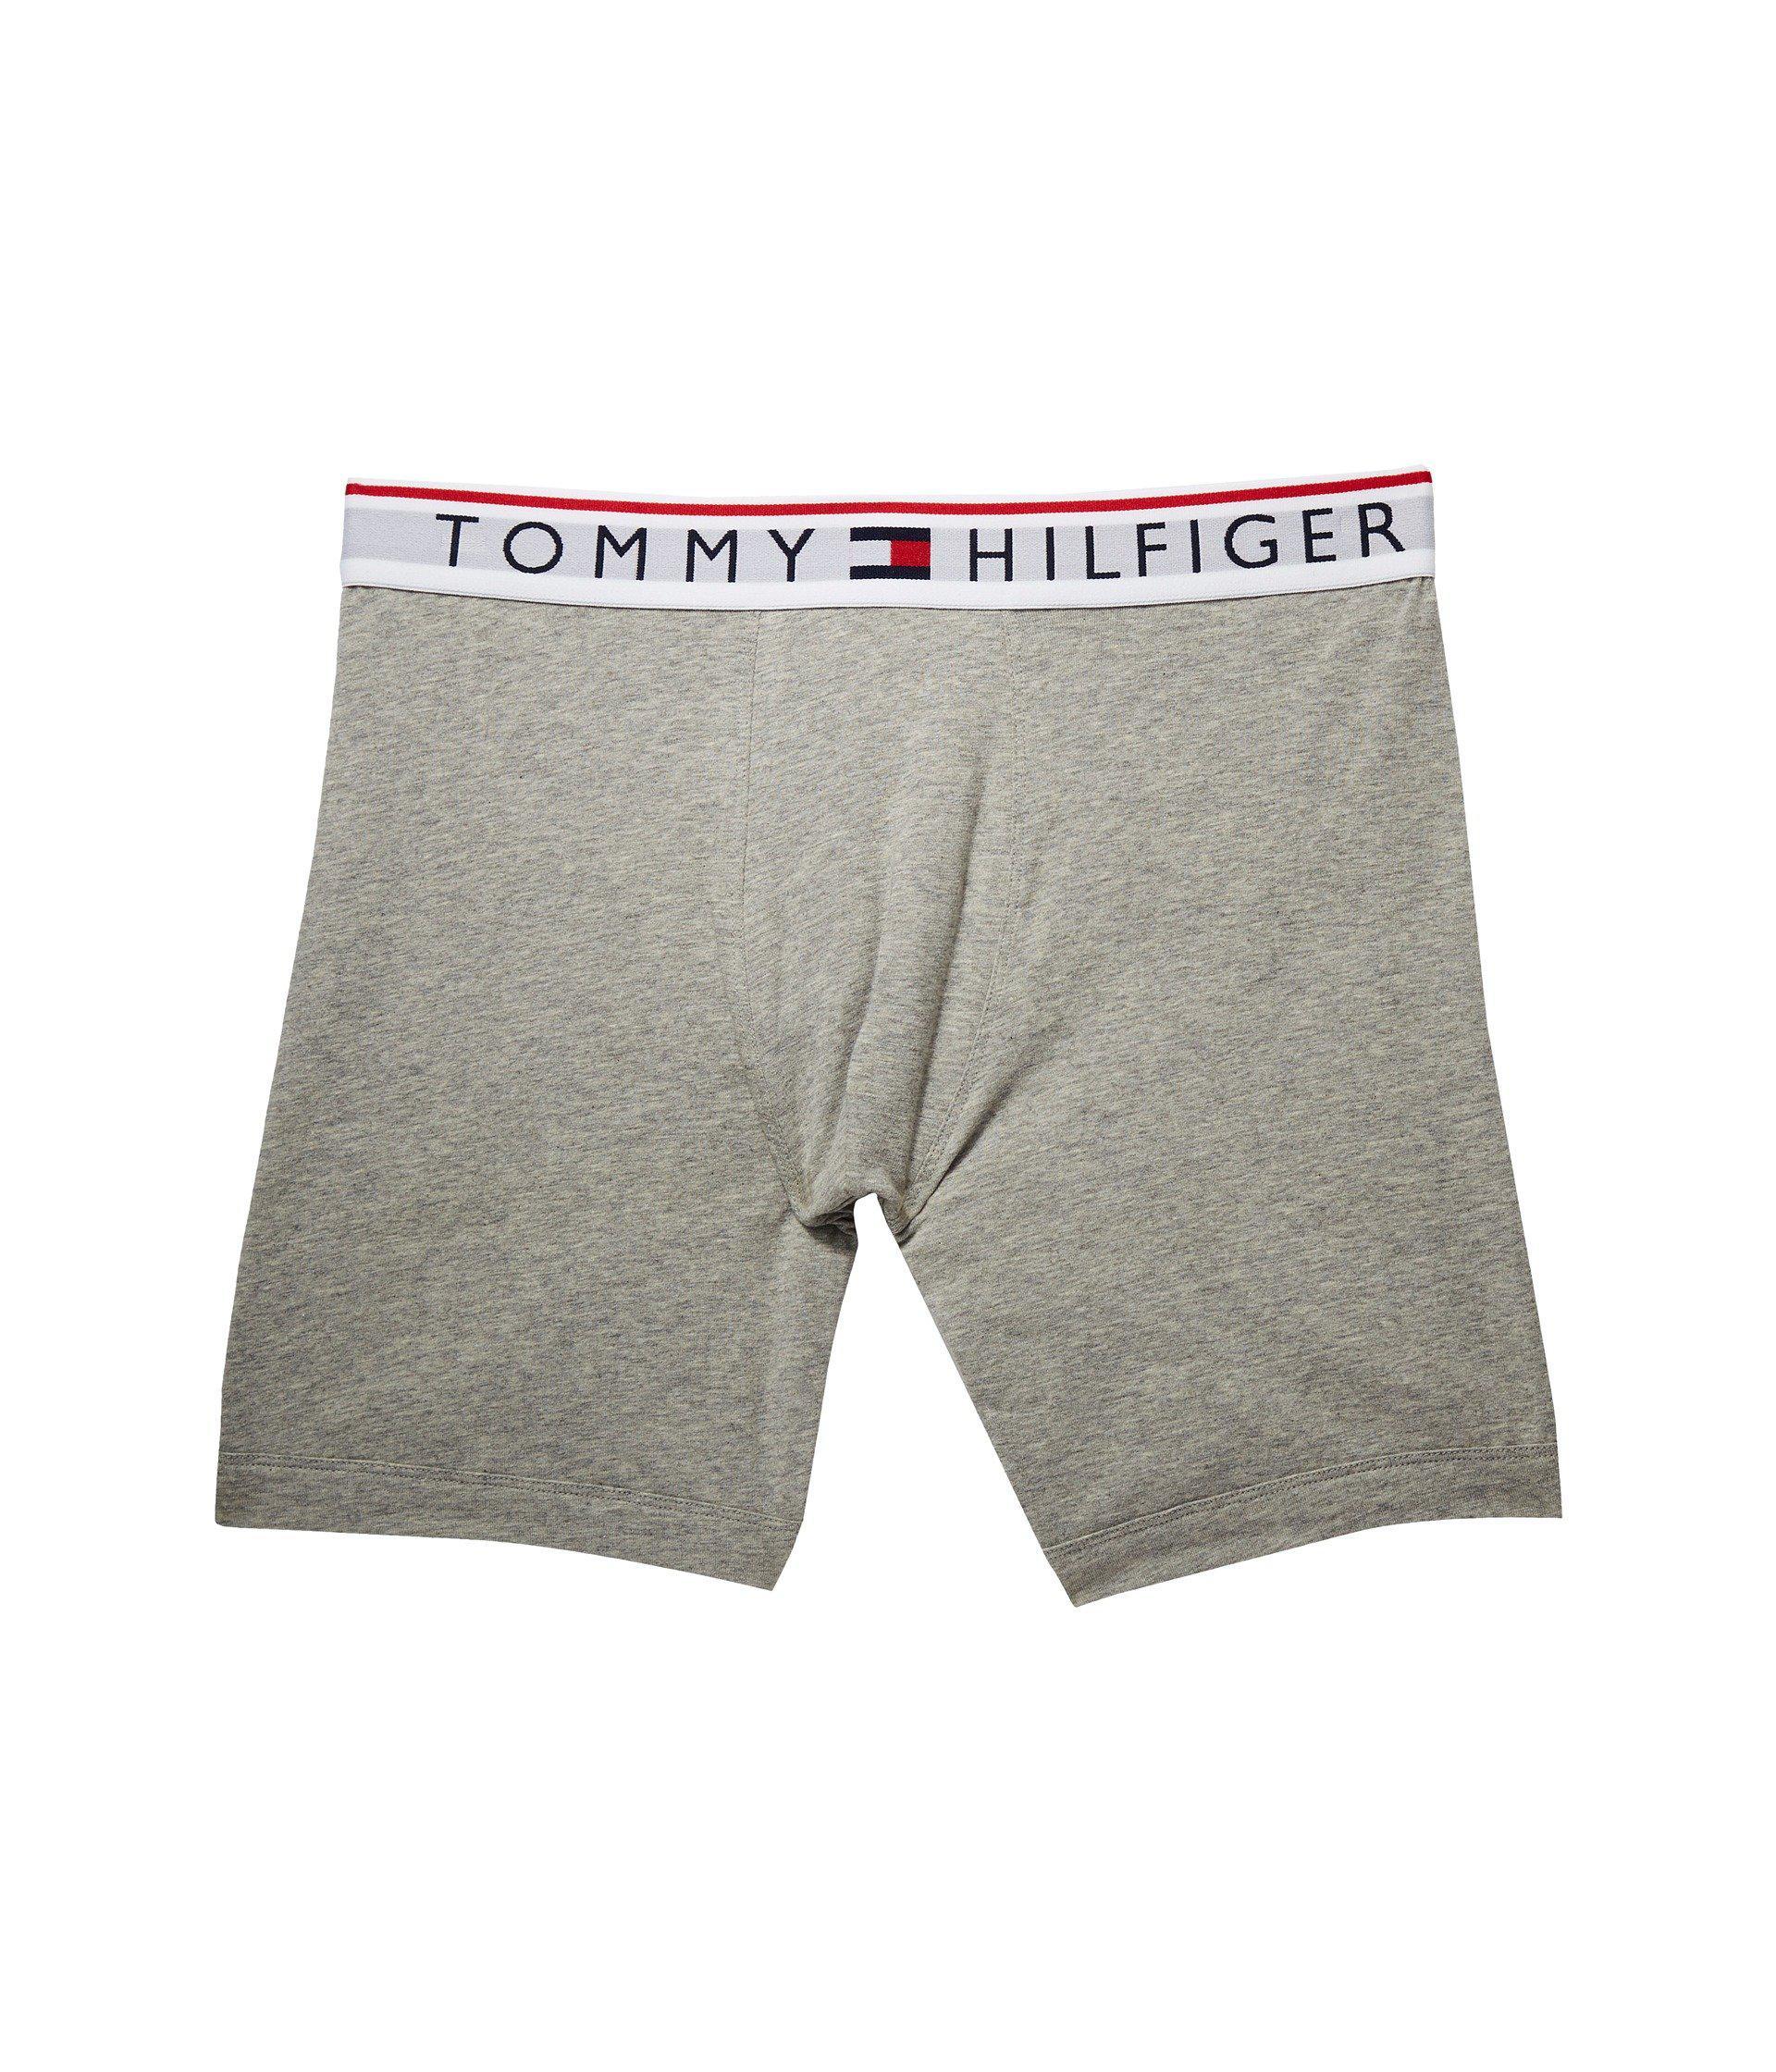 Lyst - Tommy Hilfiger Modern Essentials 2-pack Boxer Briefs (dark Navy) Men s  Underwear in Blue for Men db88bc8b9